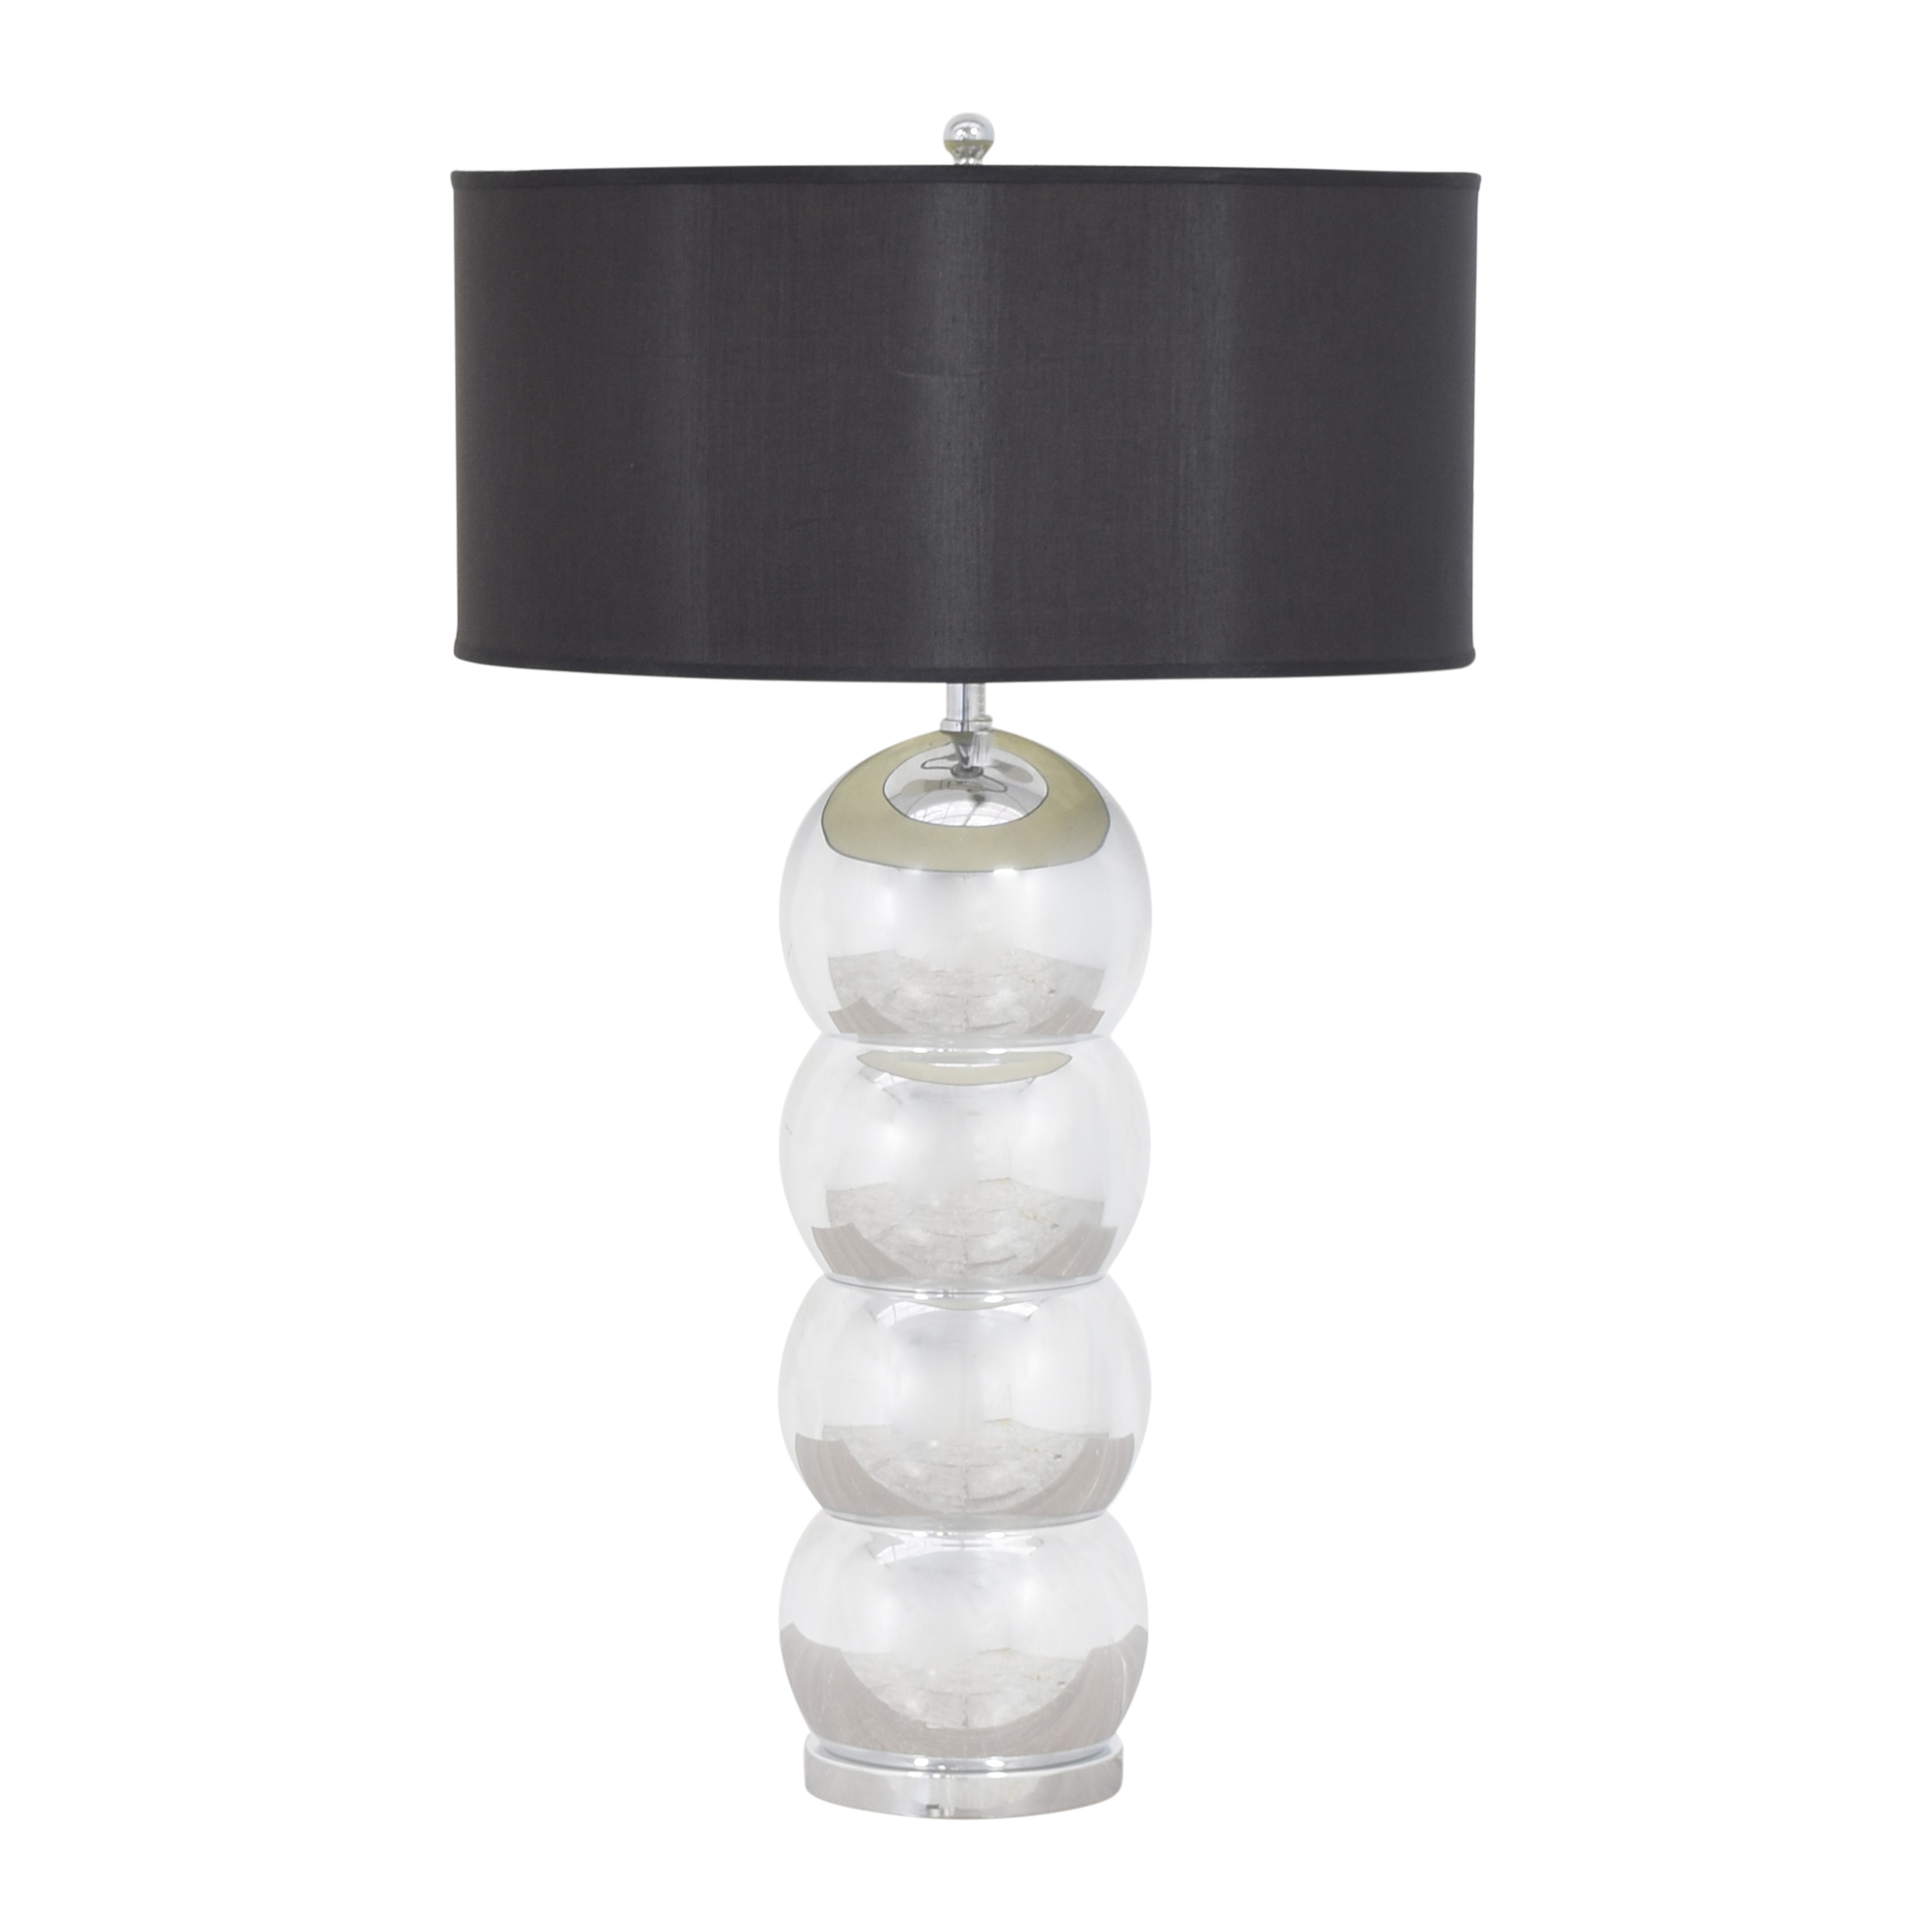 George Kovacs Stacked Ball Table Lamp sale